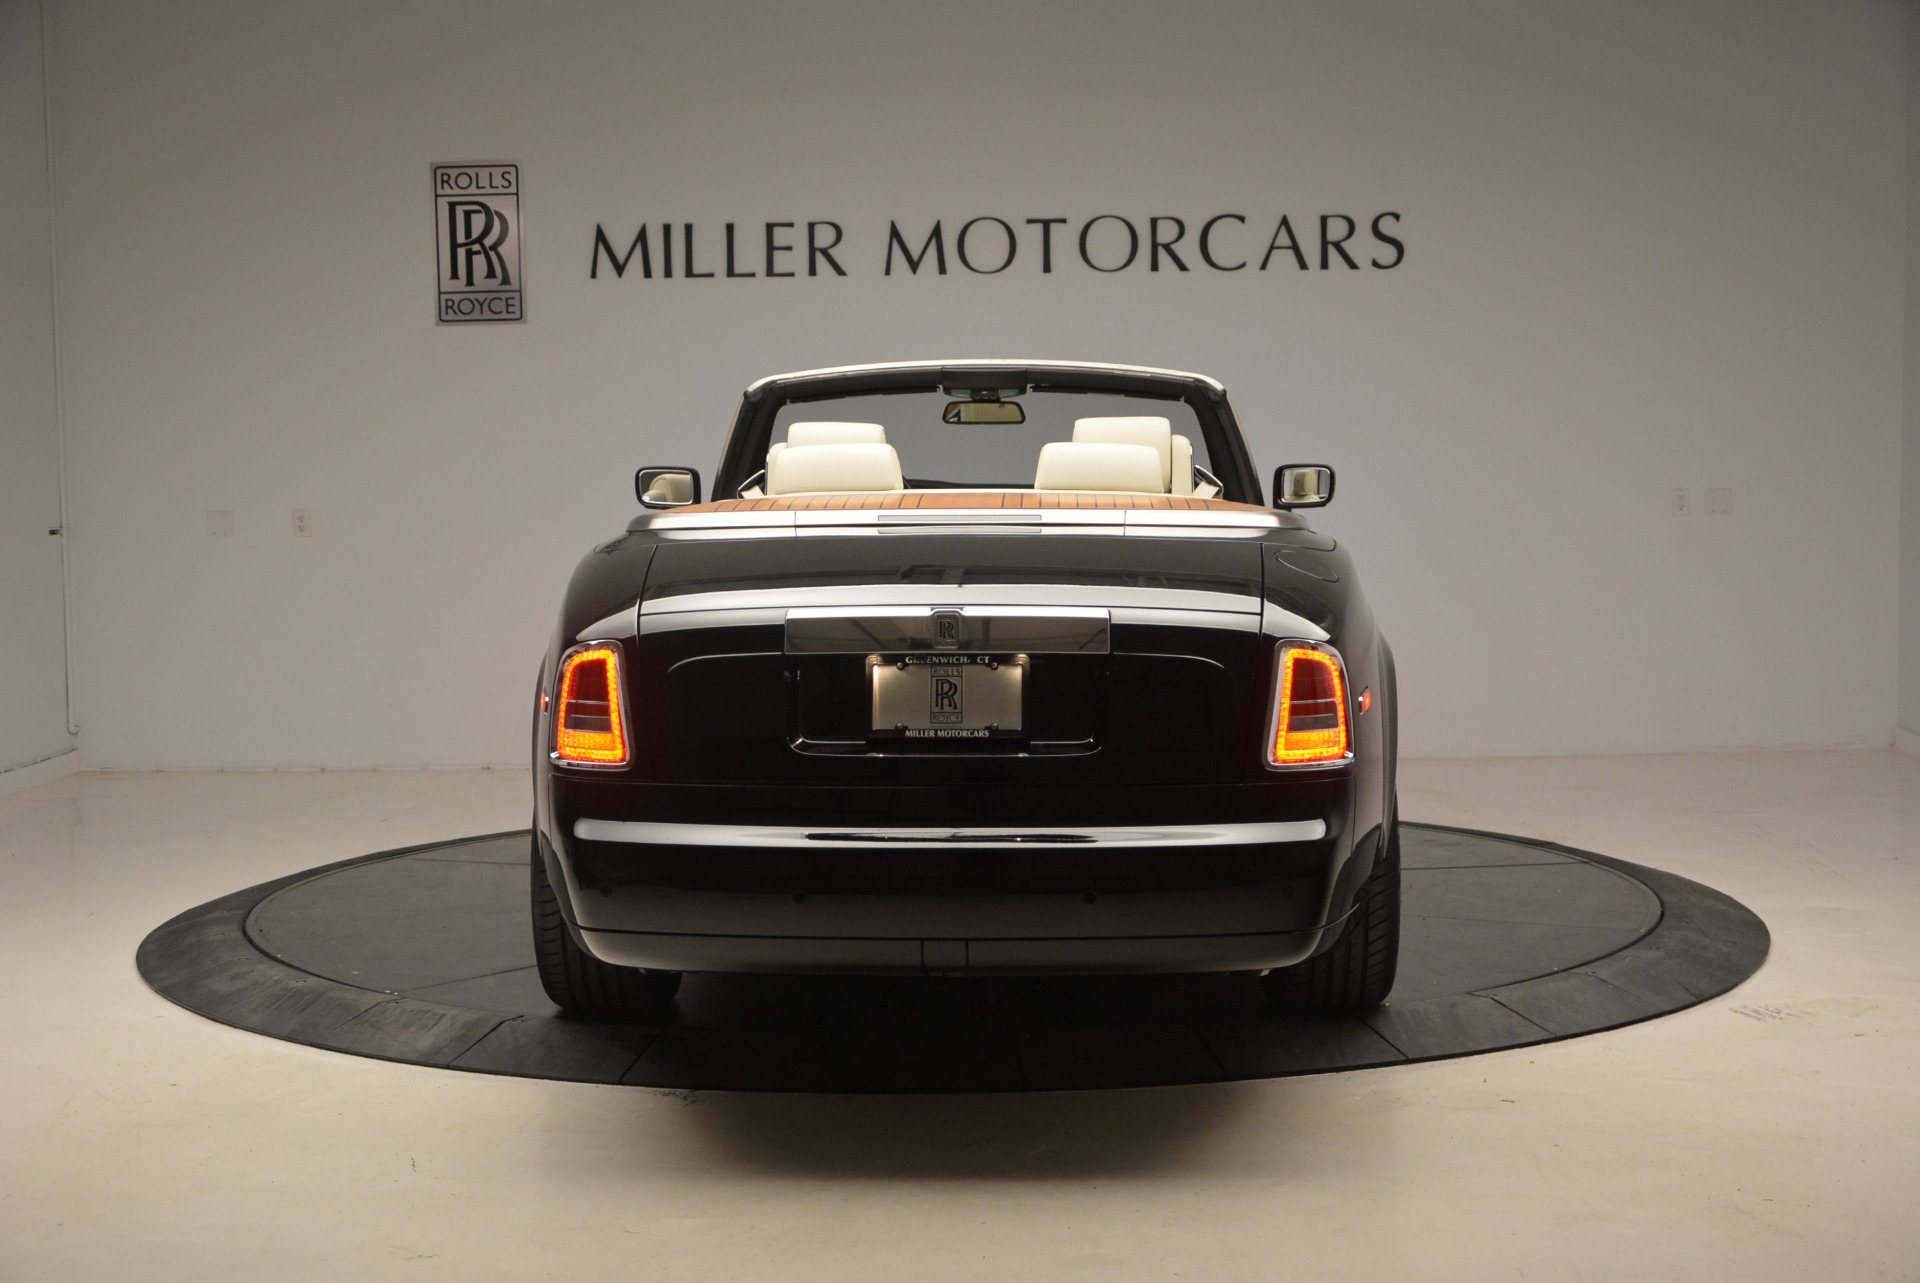 Used 2009 Rolls-Royce Phantom Drophead Coupe  For Sale In Greenwich, CT 1792_p6